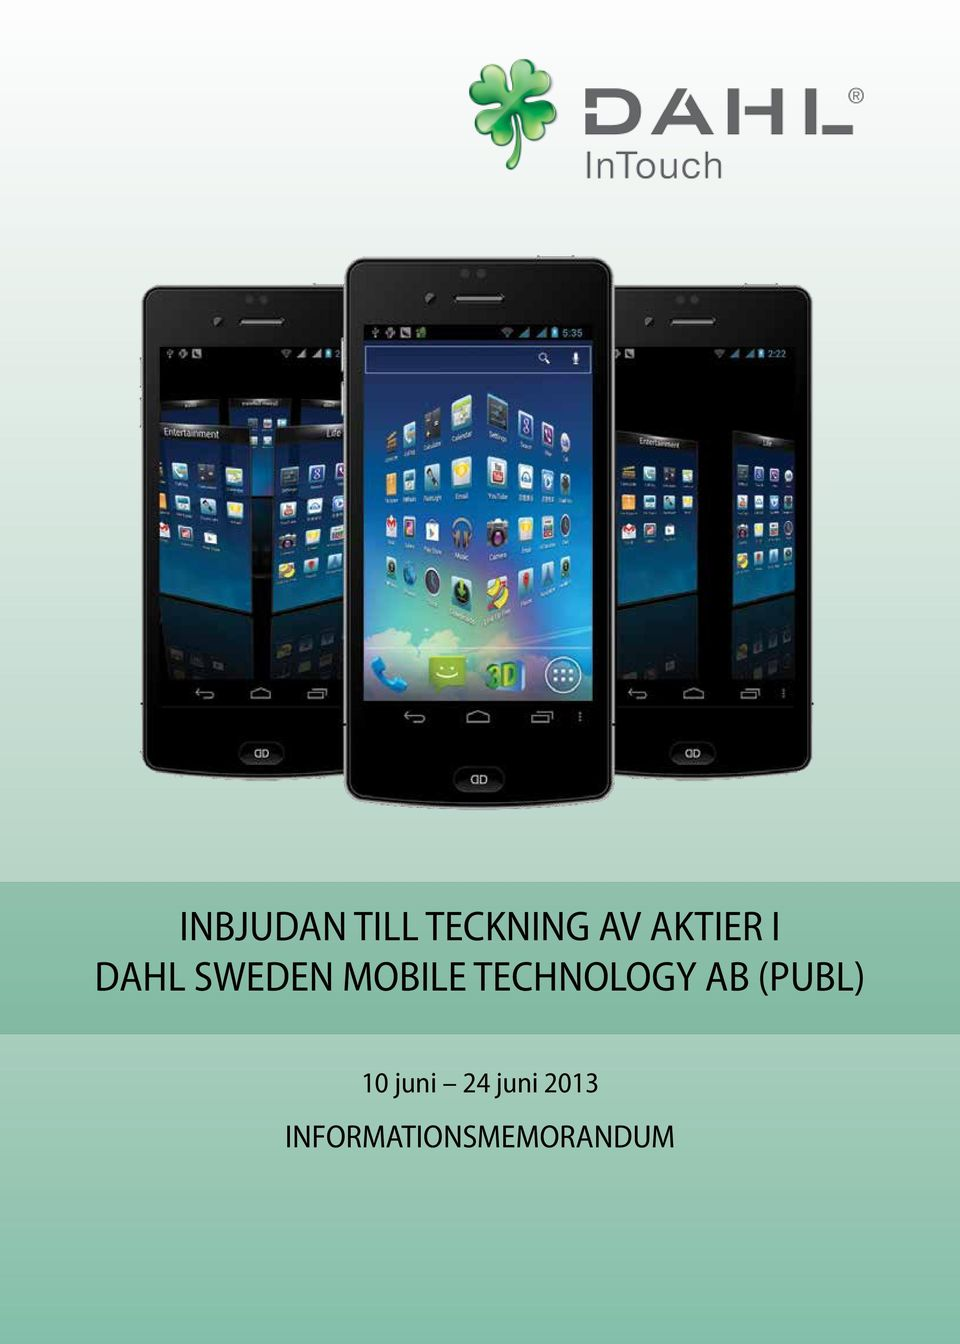 TECHNOLOGY AB (PUBL) 10 juni